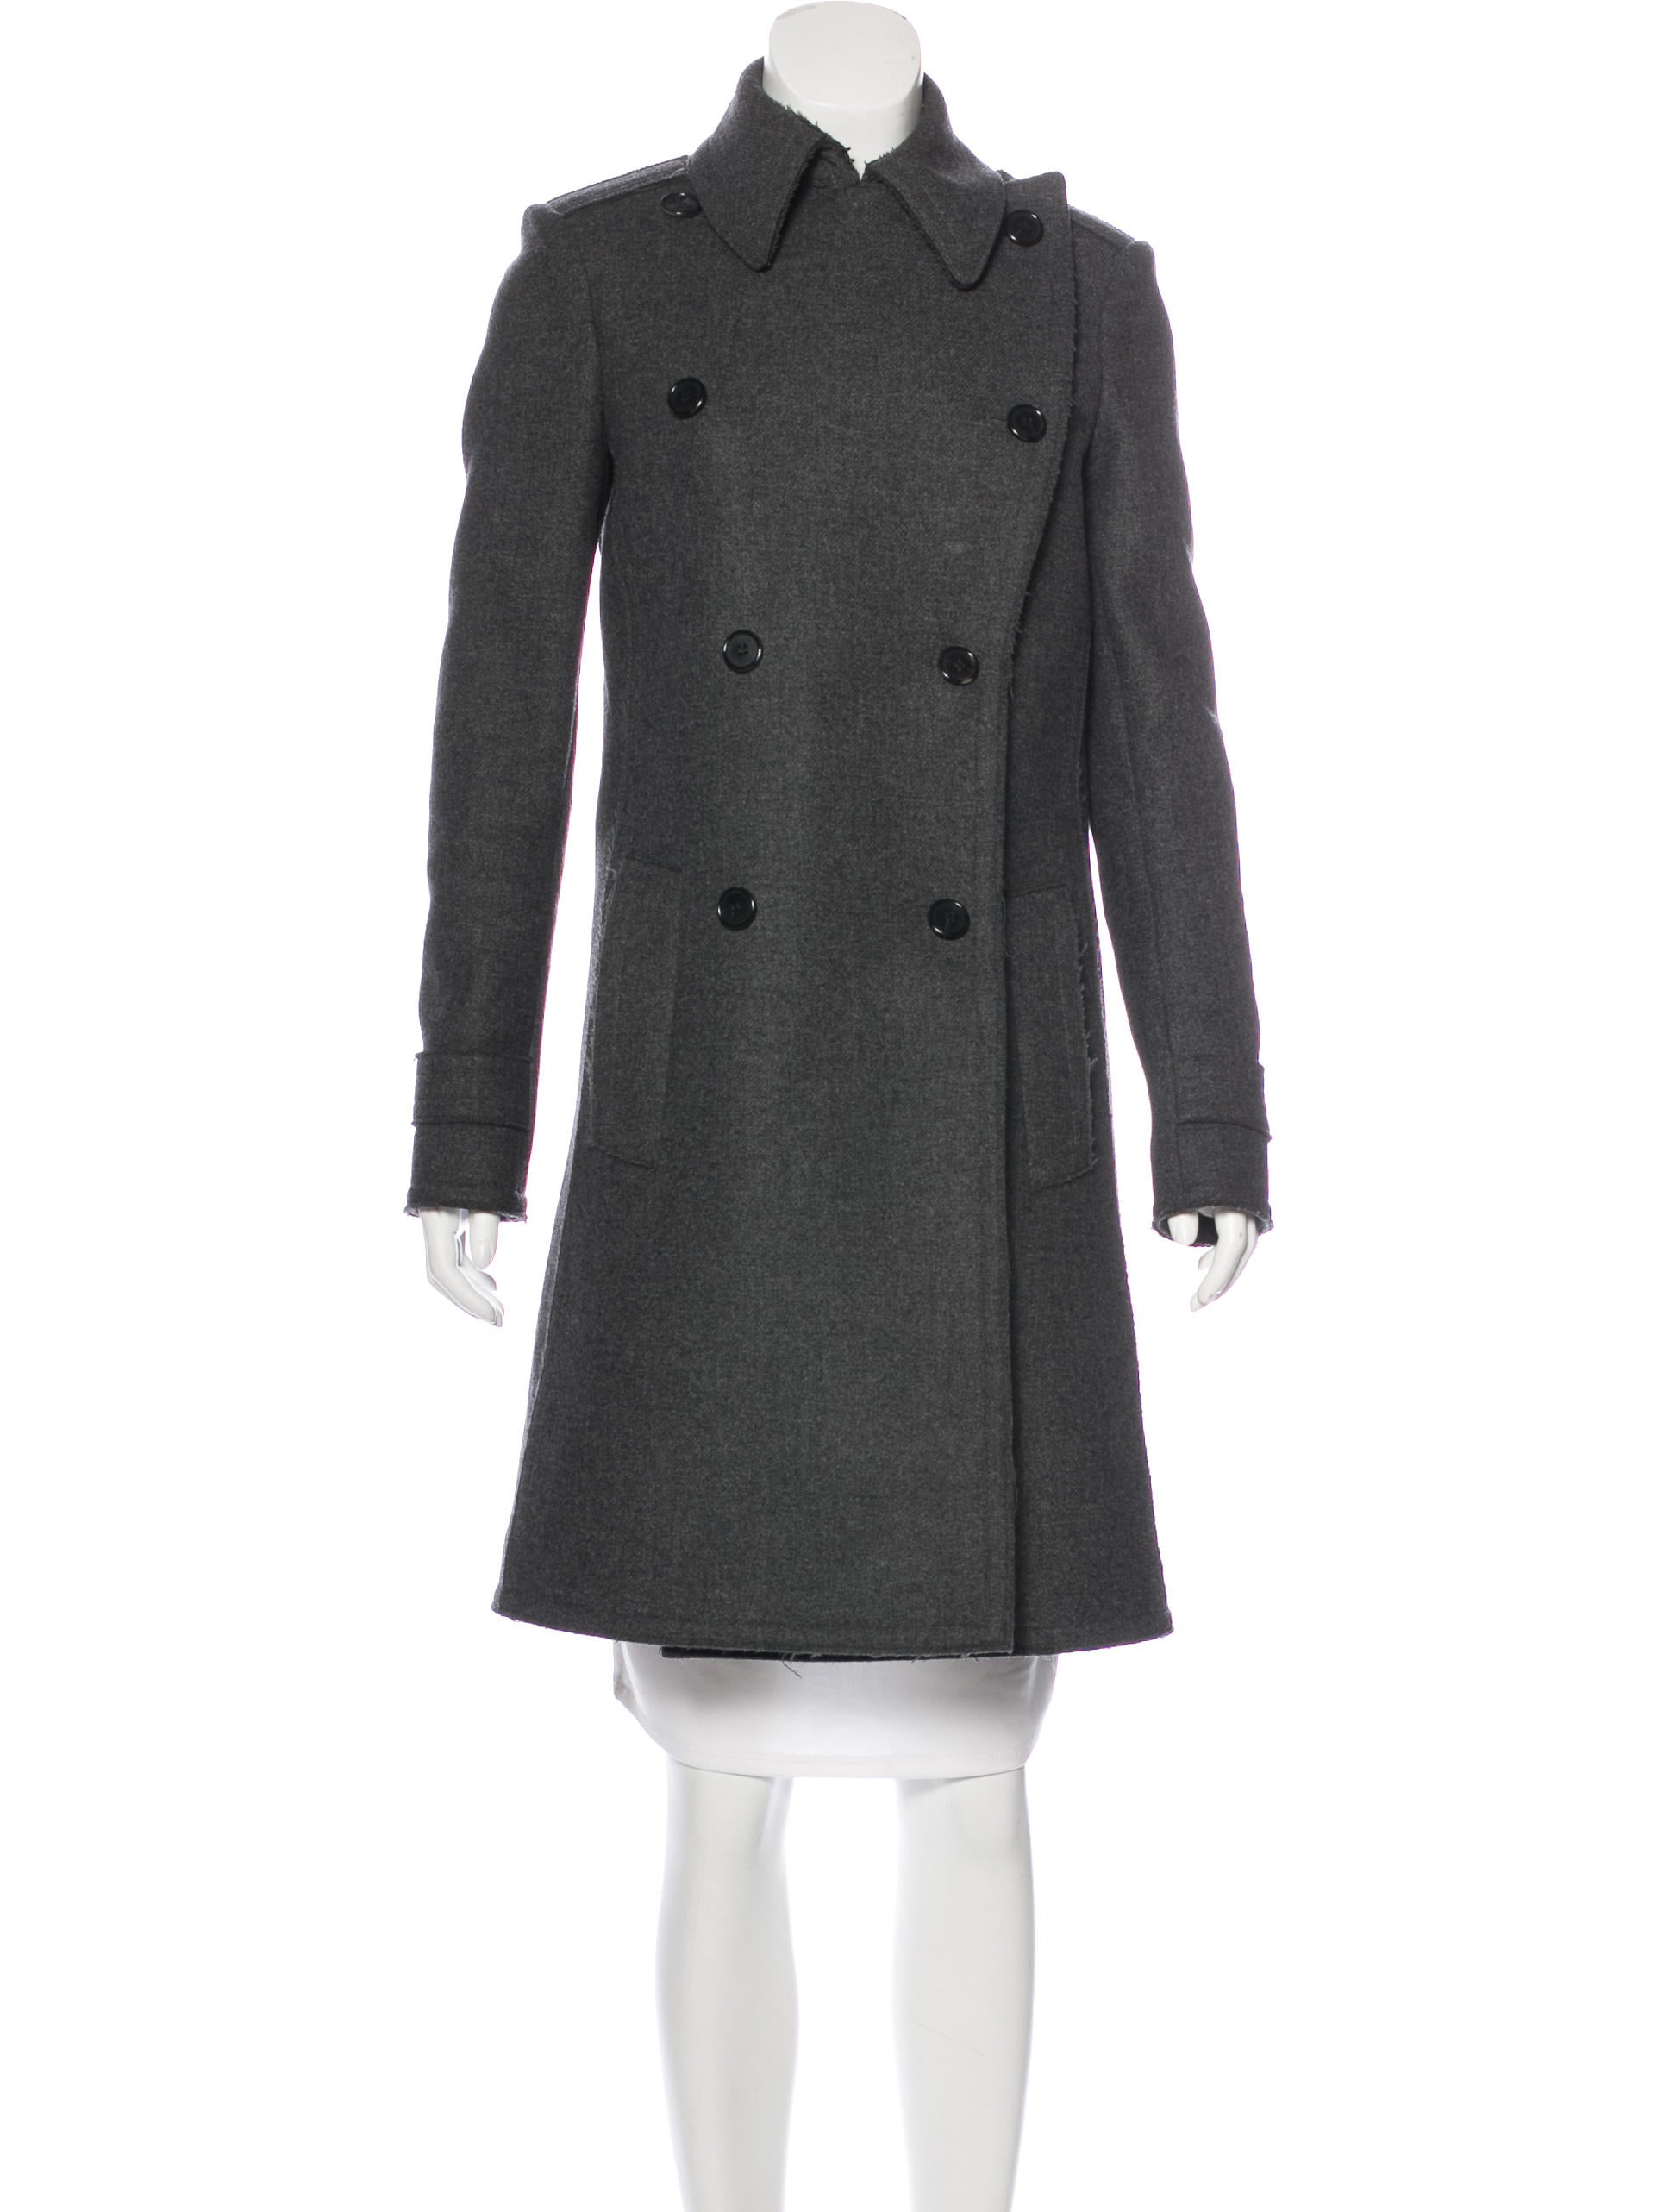 Shop online for women's wool & wool blend coats at jomp16.tk Browse our selection of double-breasted coats, blazers, trenches and more. Free shipping and returns.